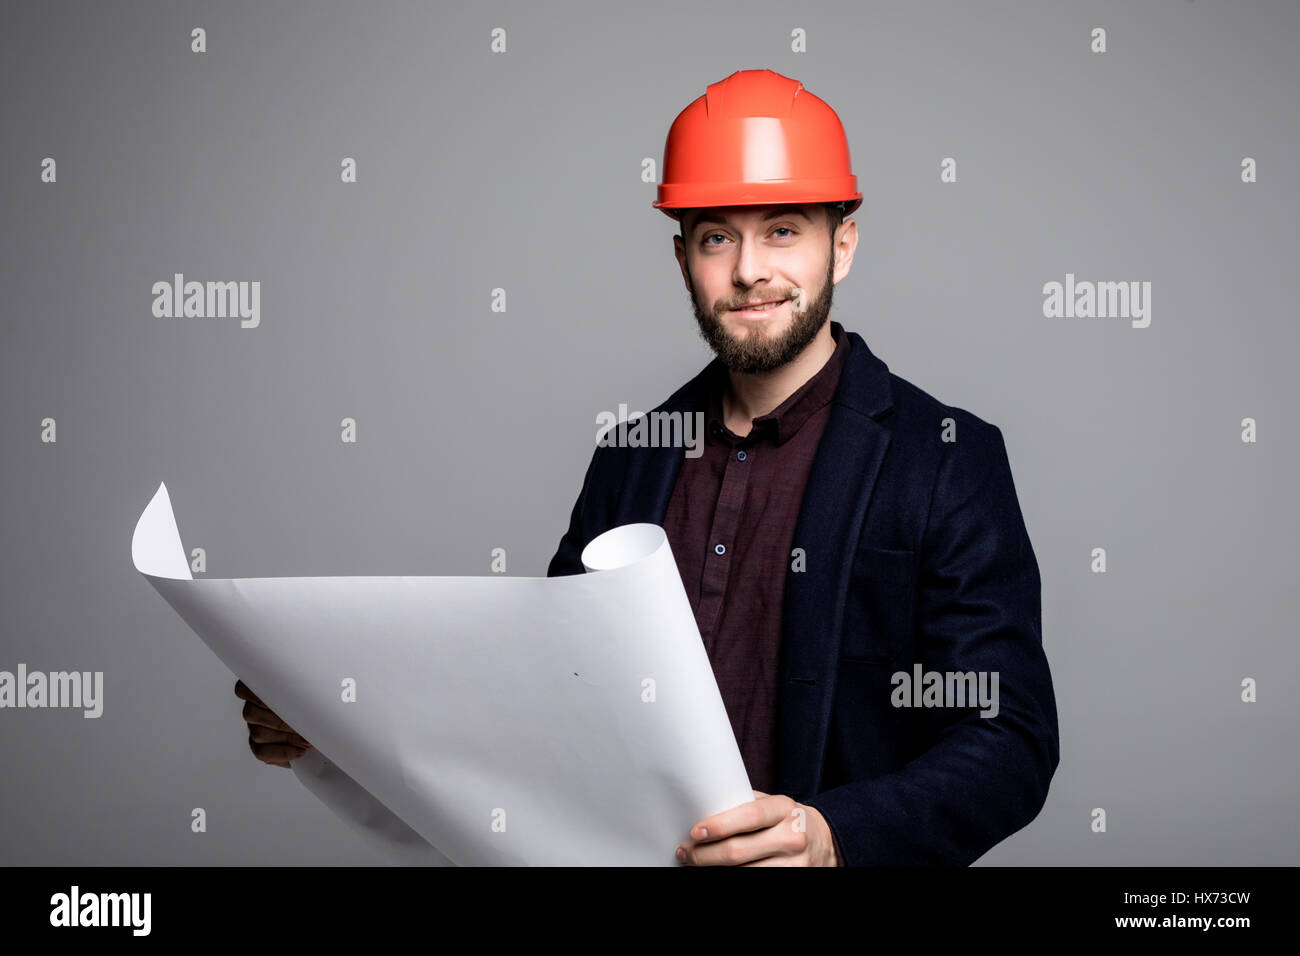 Portrait Of An Architect Builder Studying Layout Plan Of The Rooms, Serious  Civil Engineer Working With Documents On Construction Site